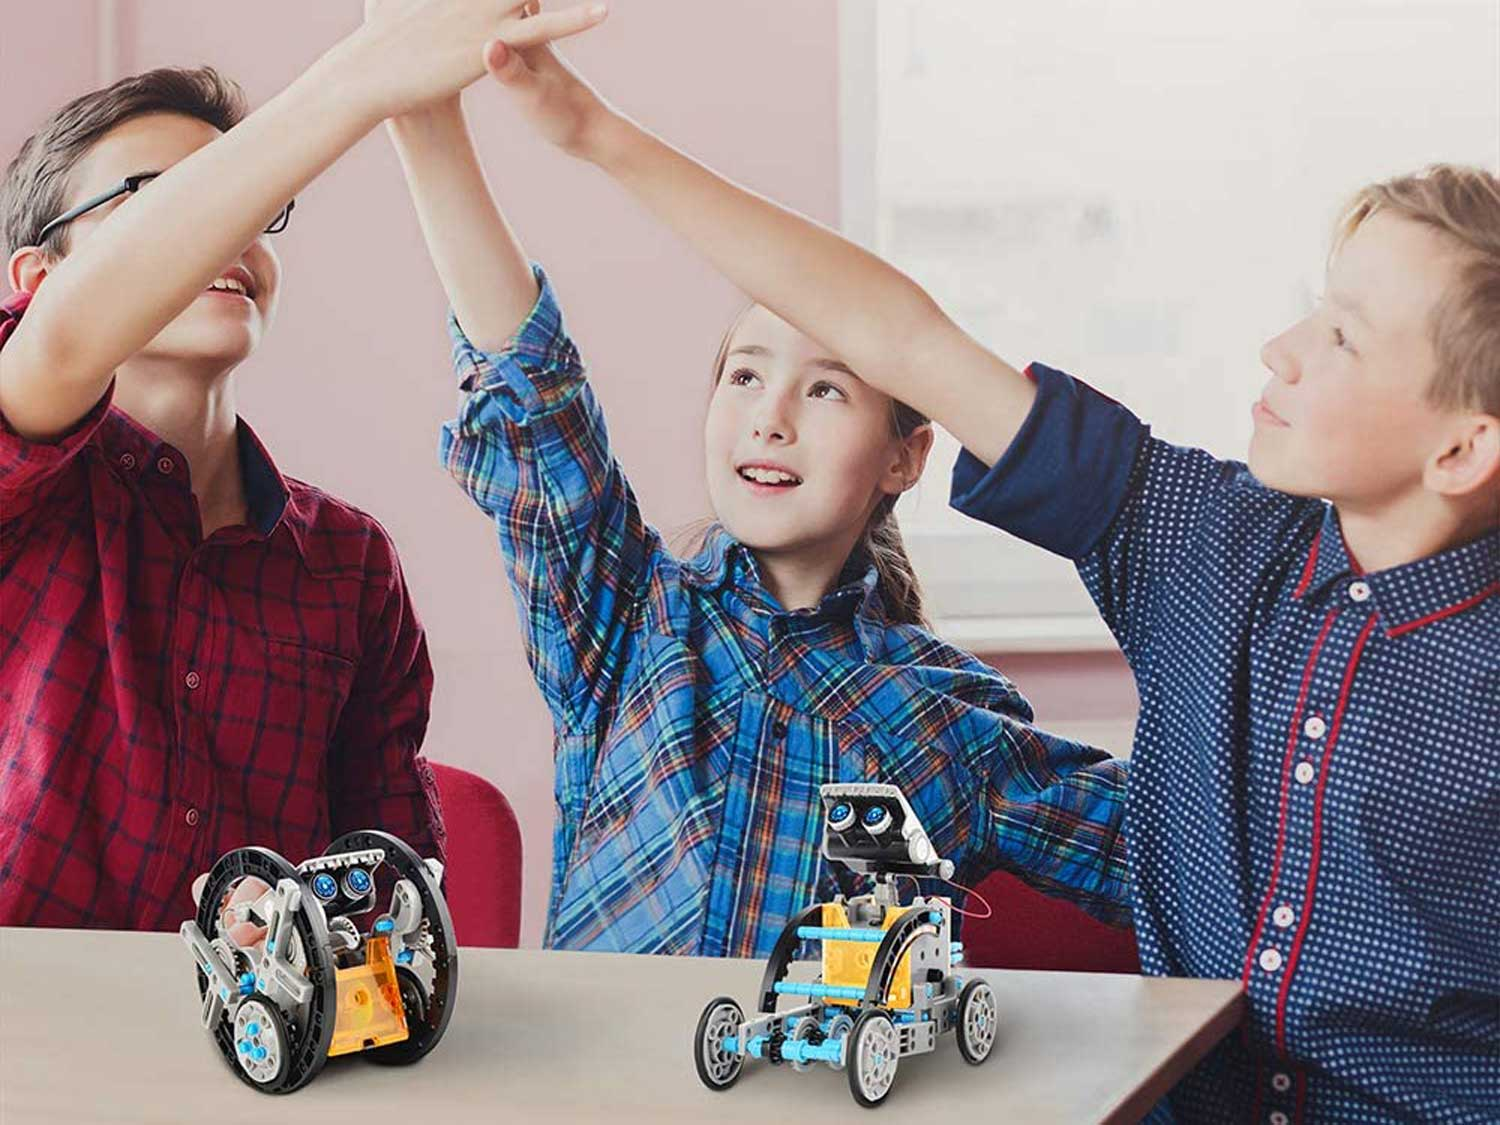 Kids playing with STEM robot toys